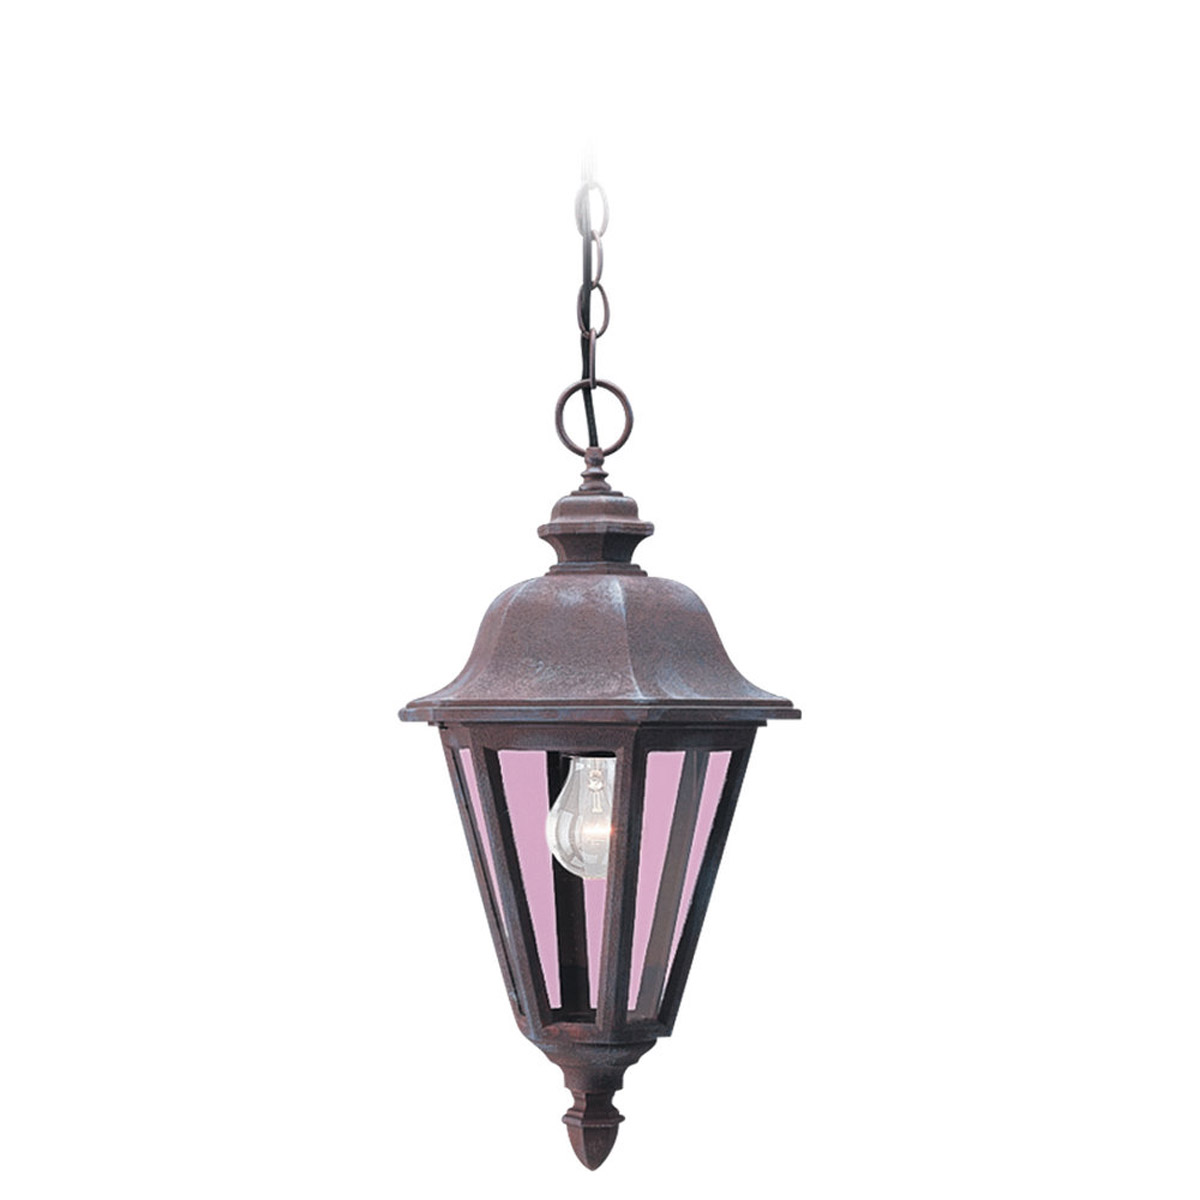 Sea Gull Lighting Brentwood 1 Light Outdoor Pendant in Sienna 6025-26